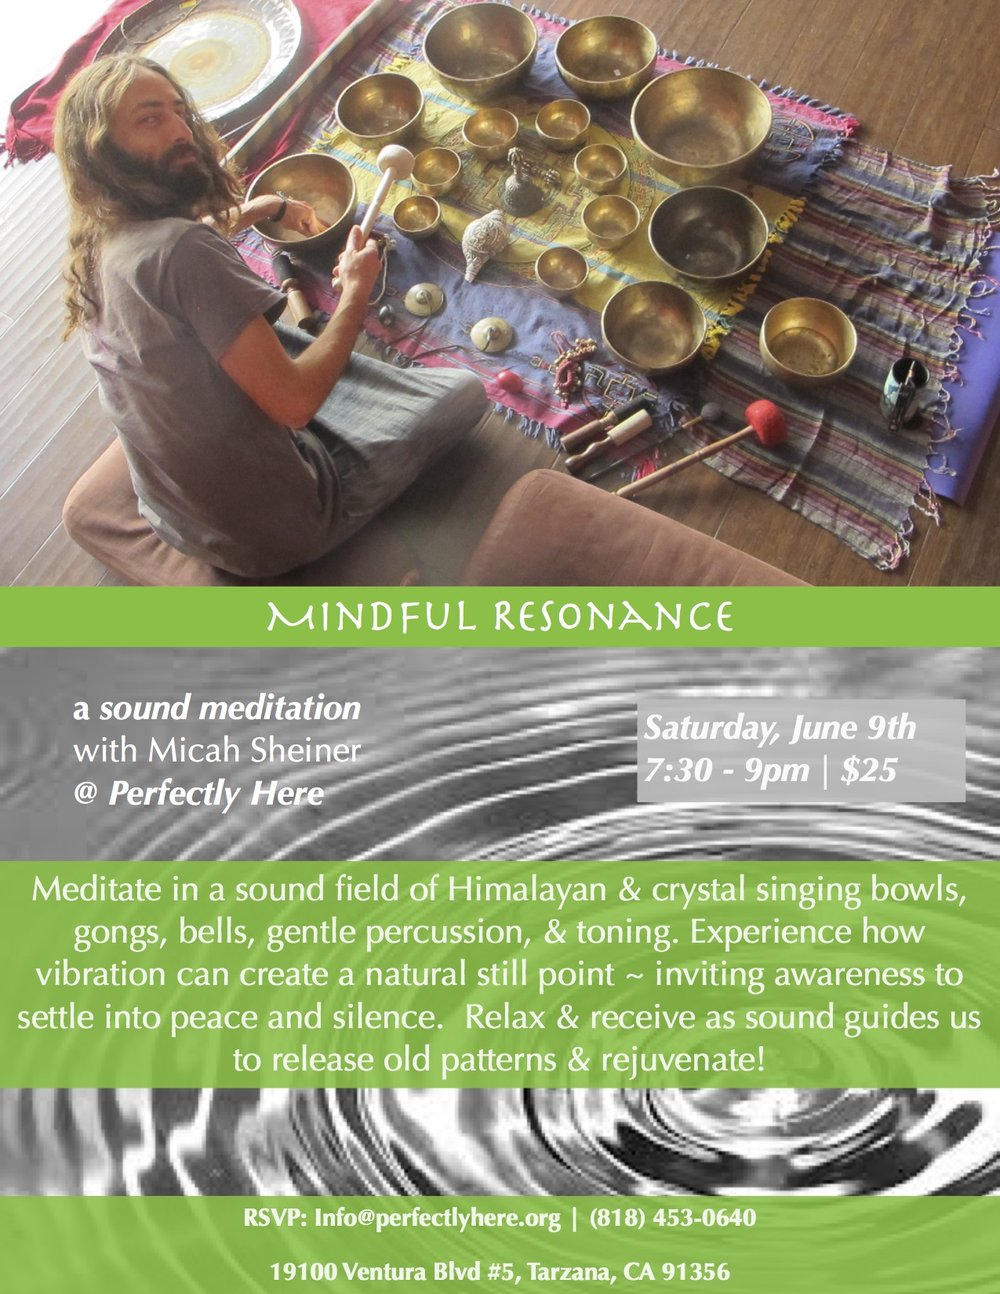 mindful resonance 5.jpg